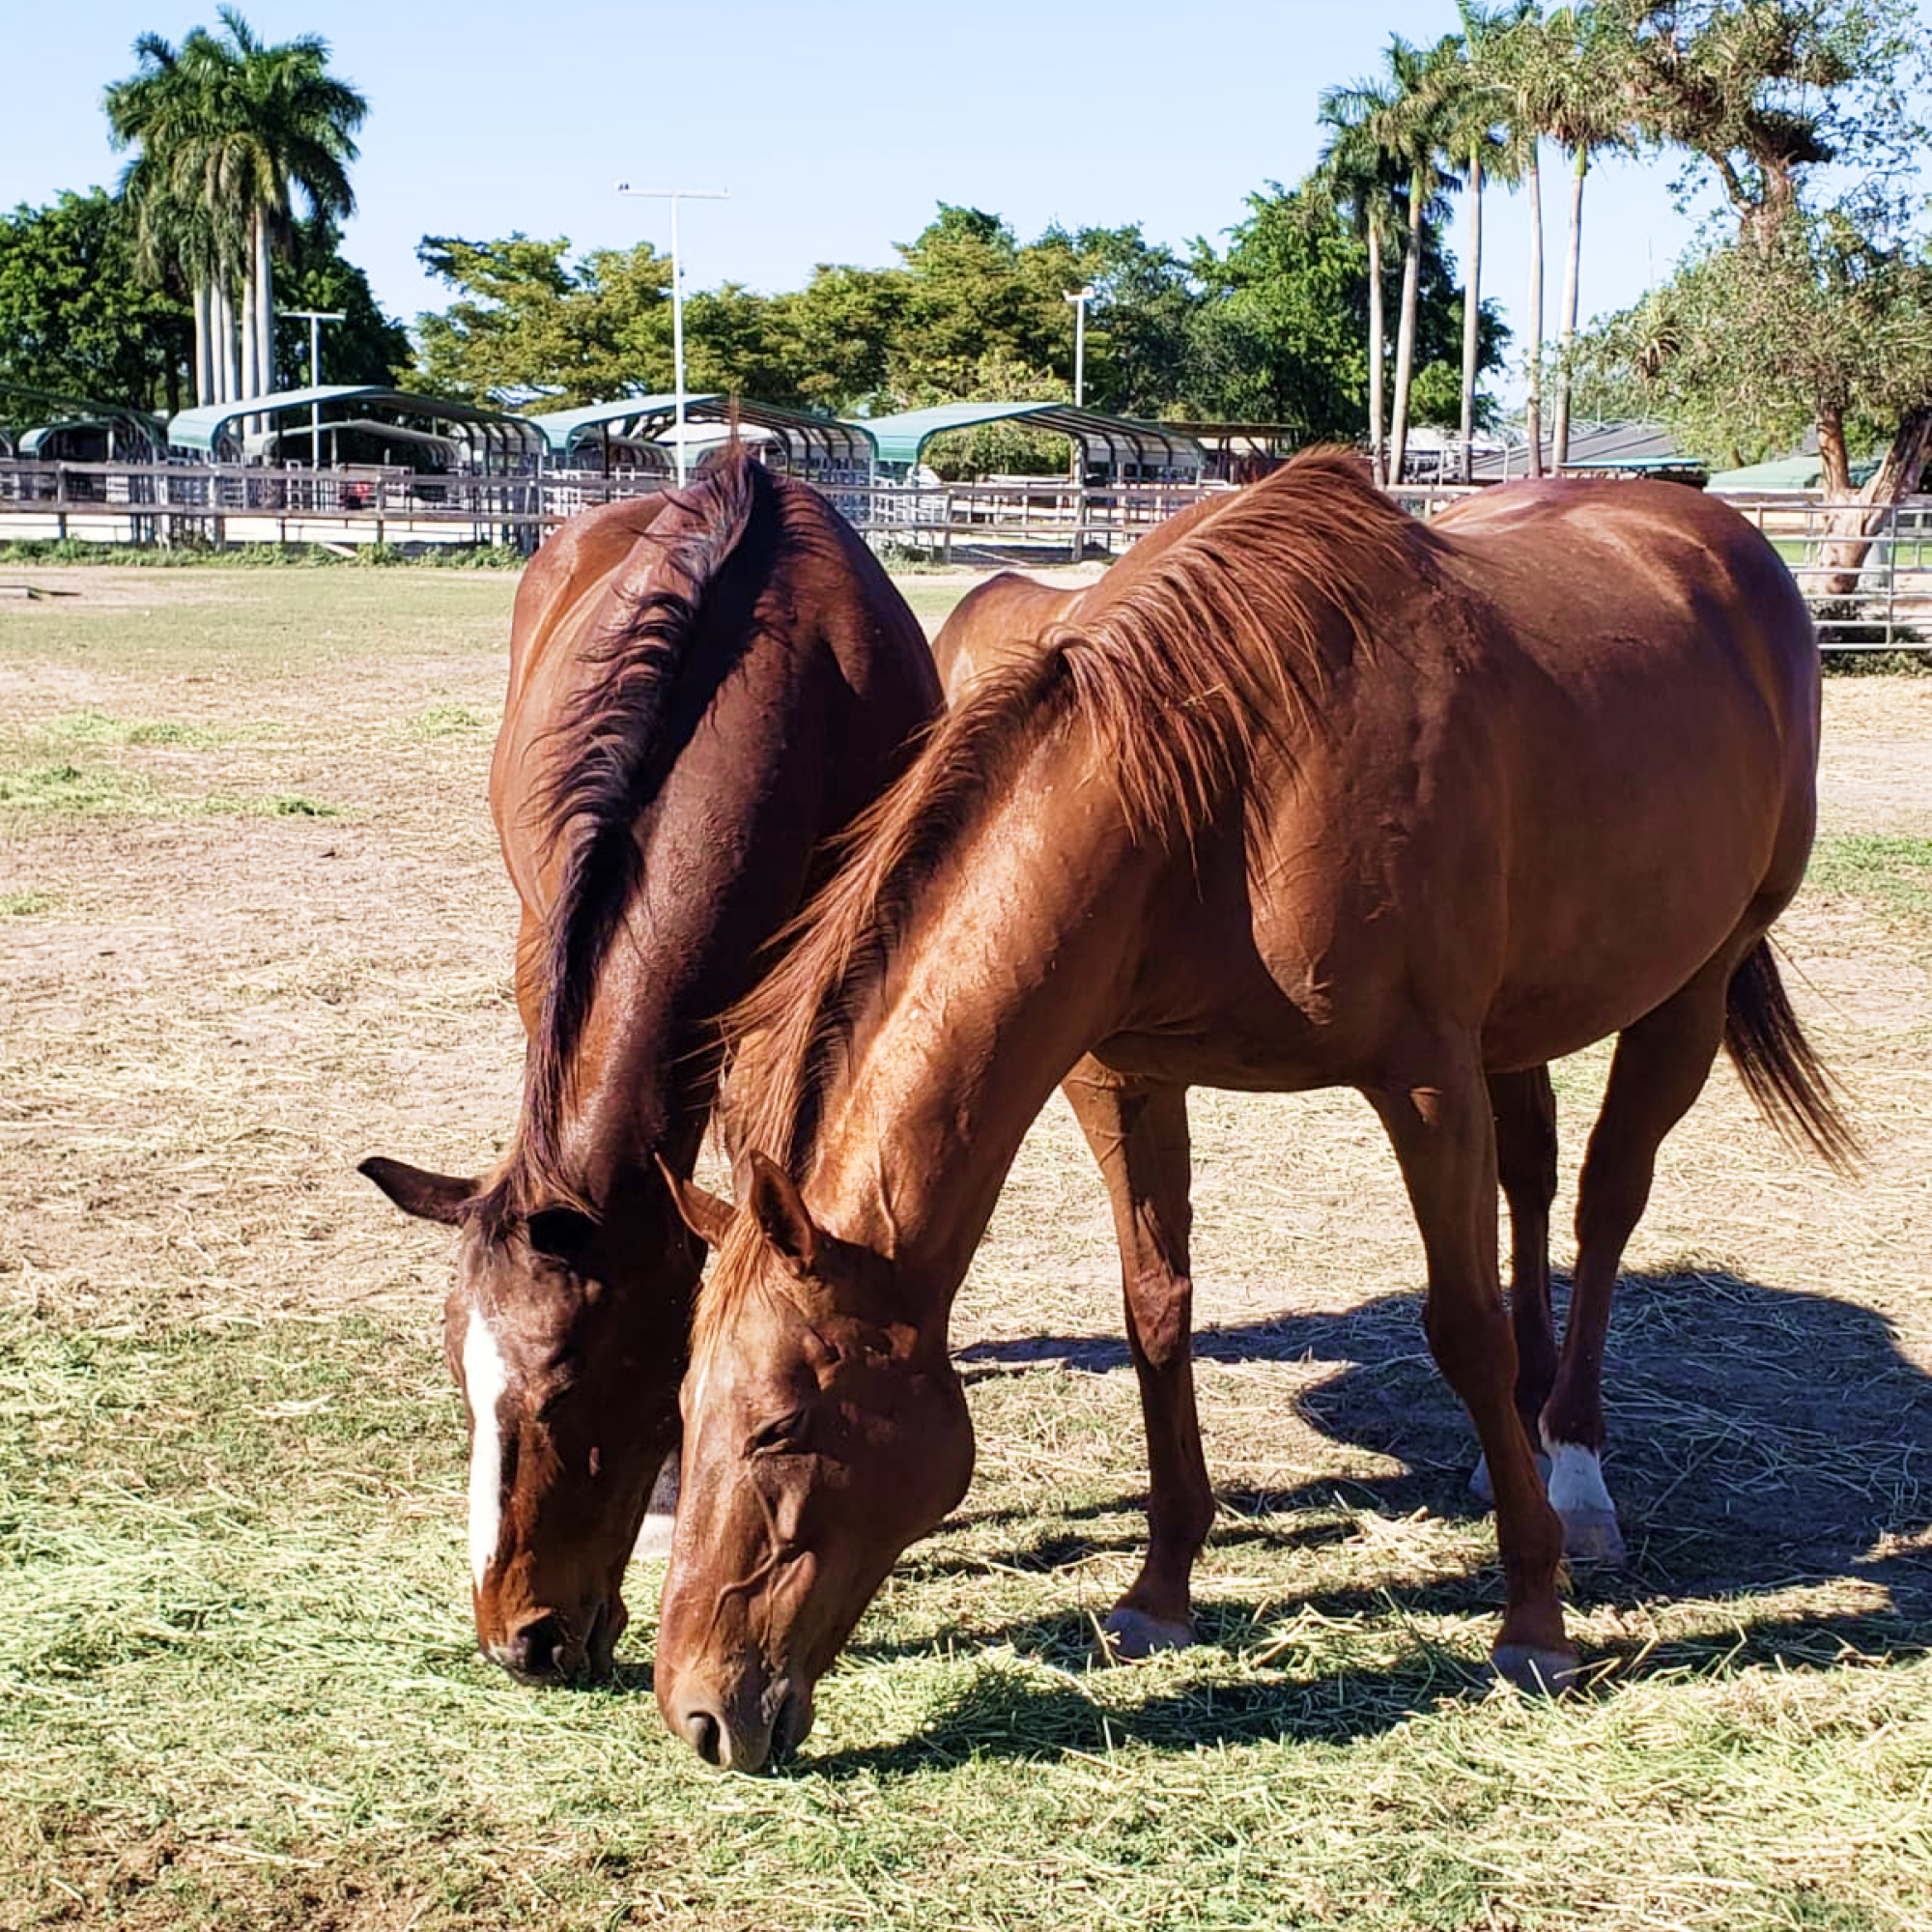 Horses Rehabilitate together at the South Florida Society for the Prevention of Cruelty to Animals